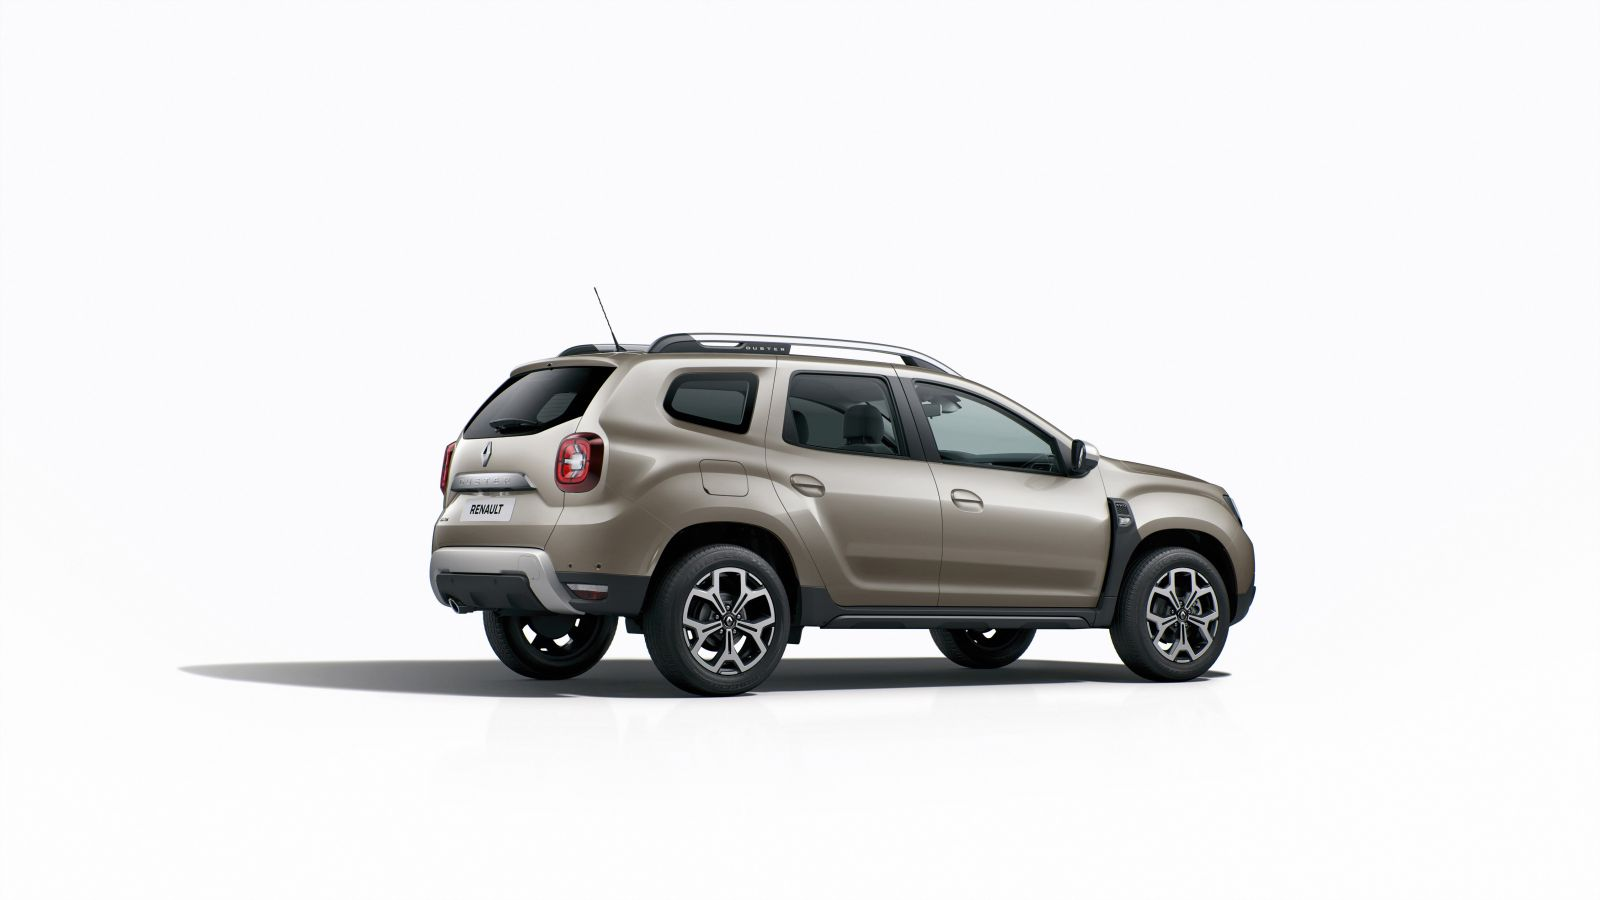 india bound 2018 renault duster makes global debut images details and all you need to know. Black Bedroom Furniture Sets. Home Design Ideas